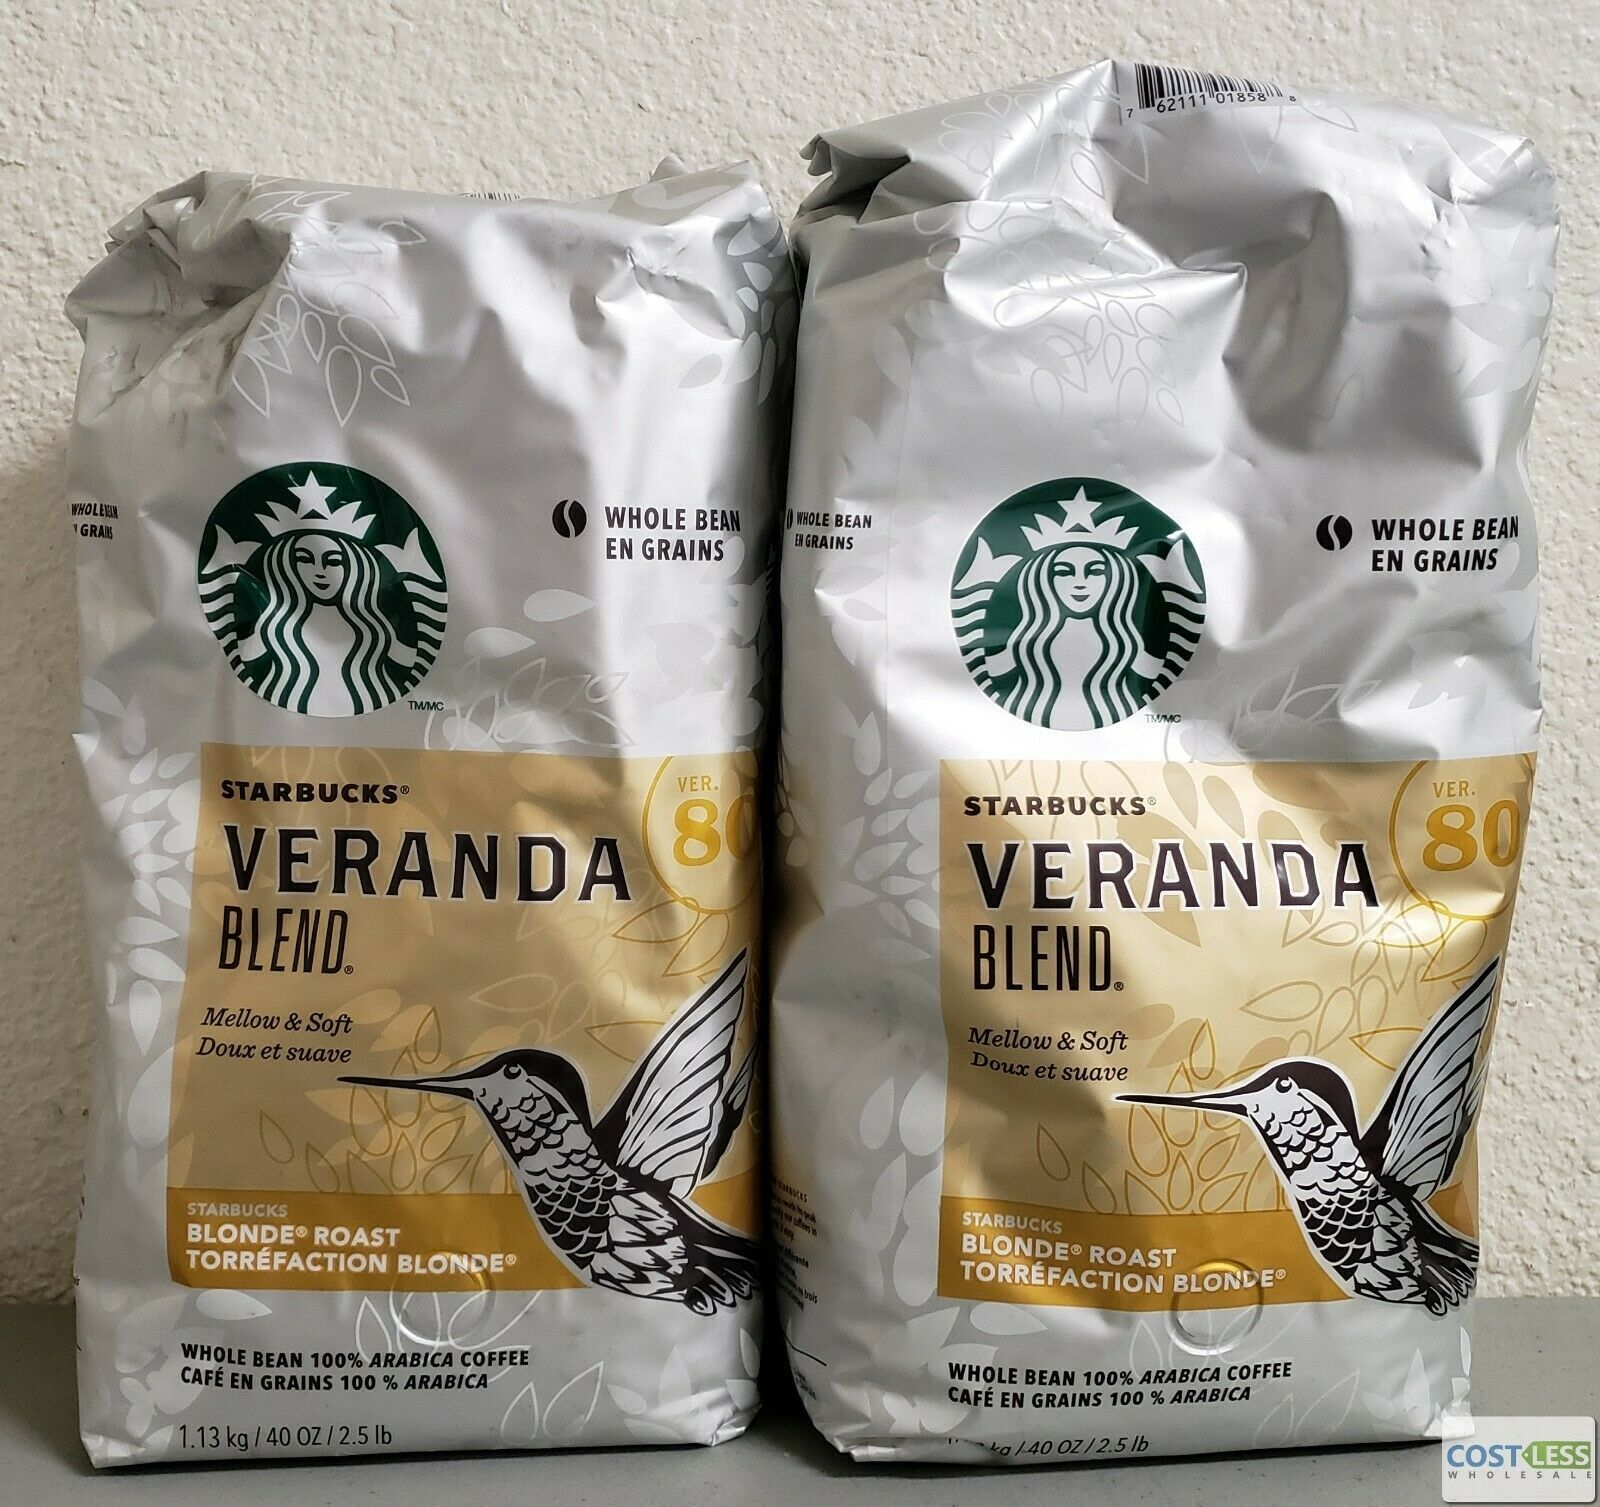 Starbucks Veranda Blend Blonde Roast Whole Bean Coffee 40